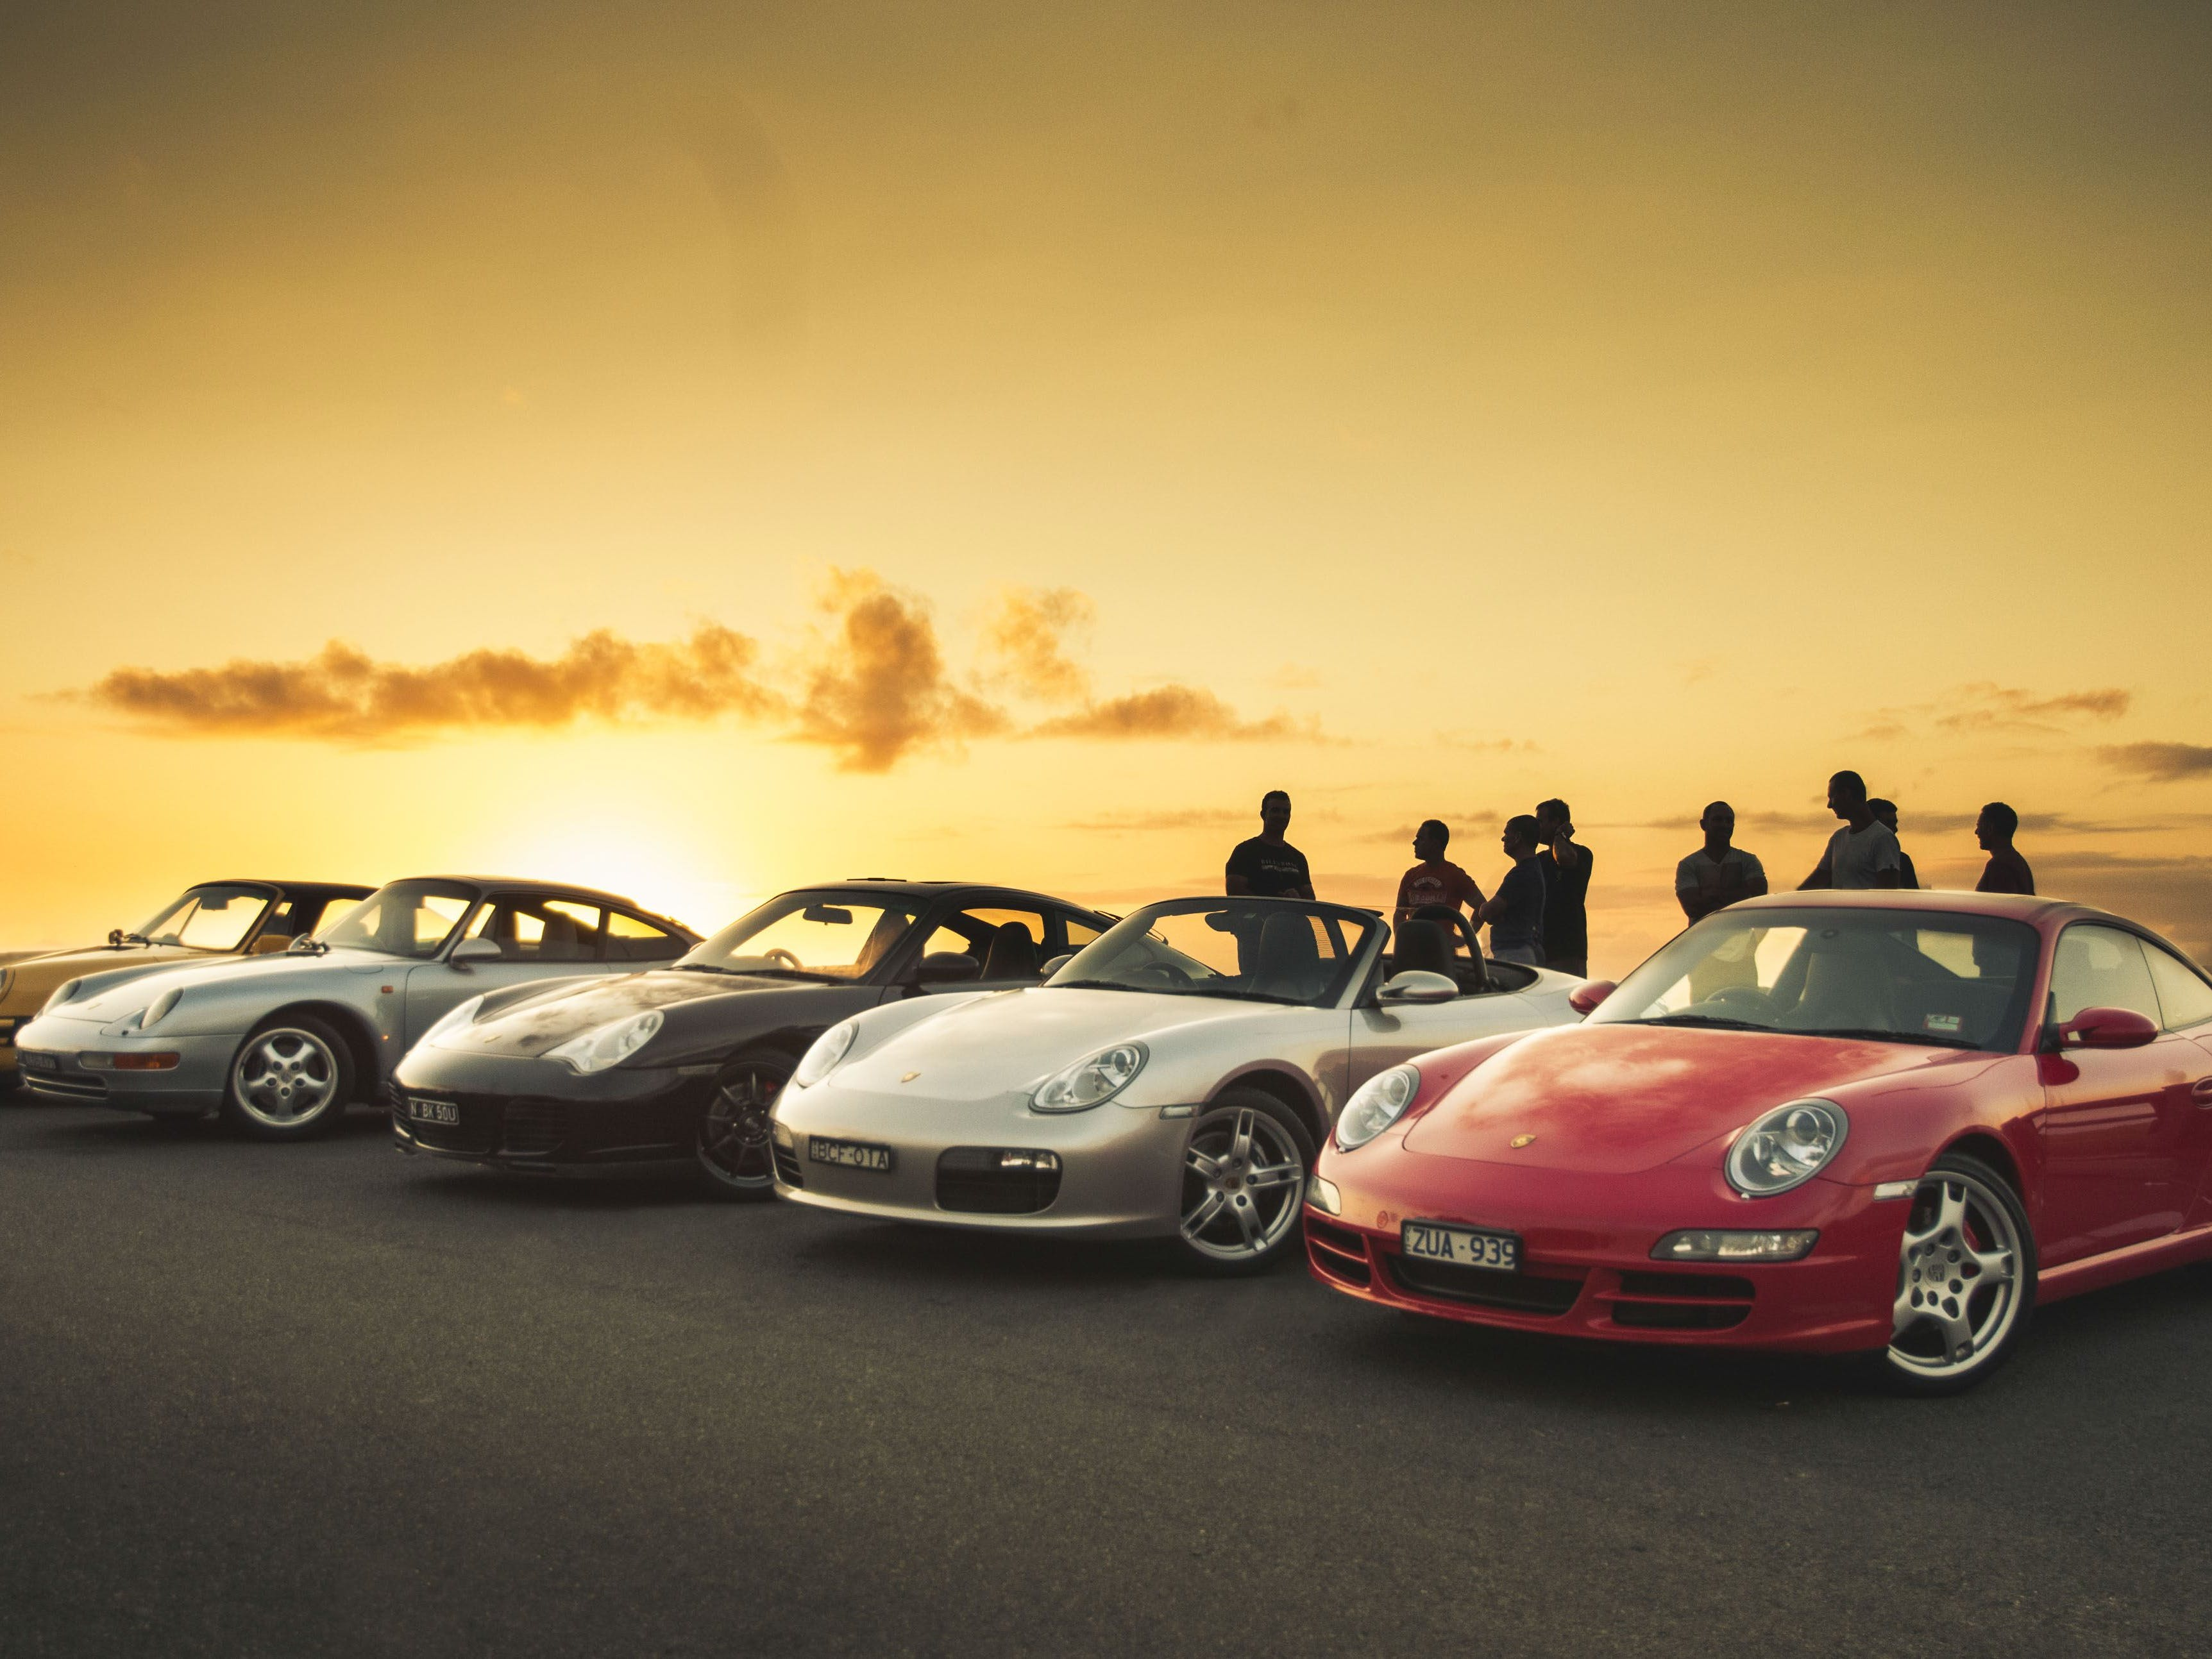 Sunrise over our Porsche Fleet